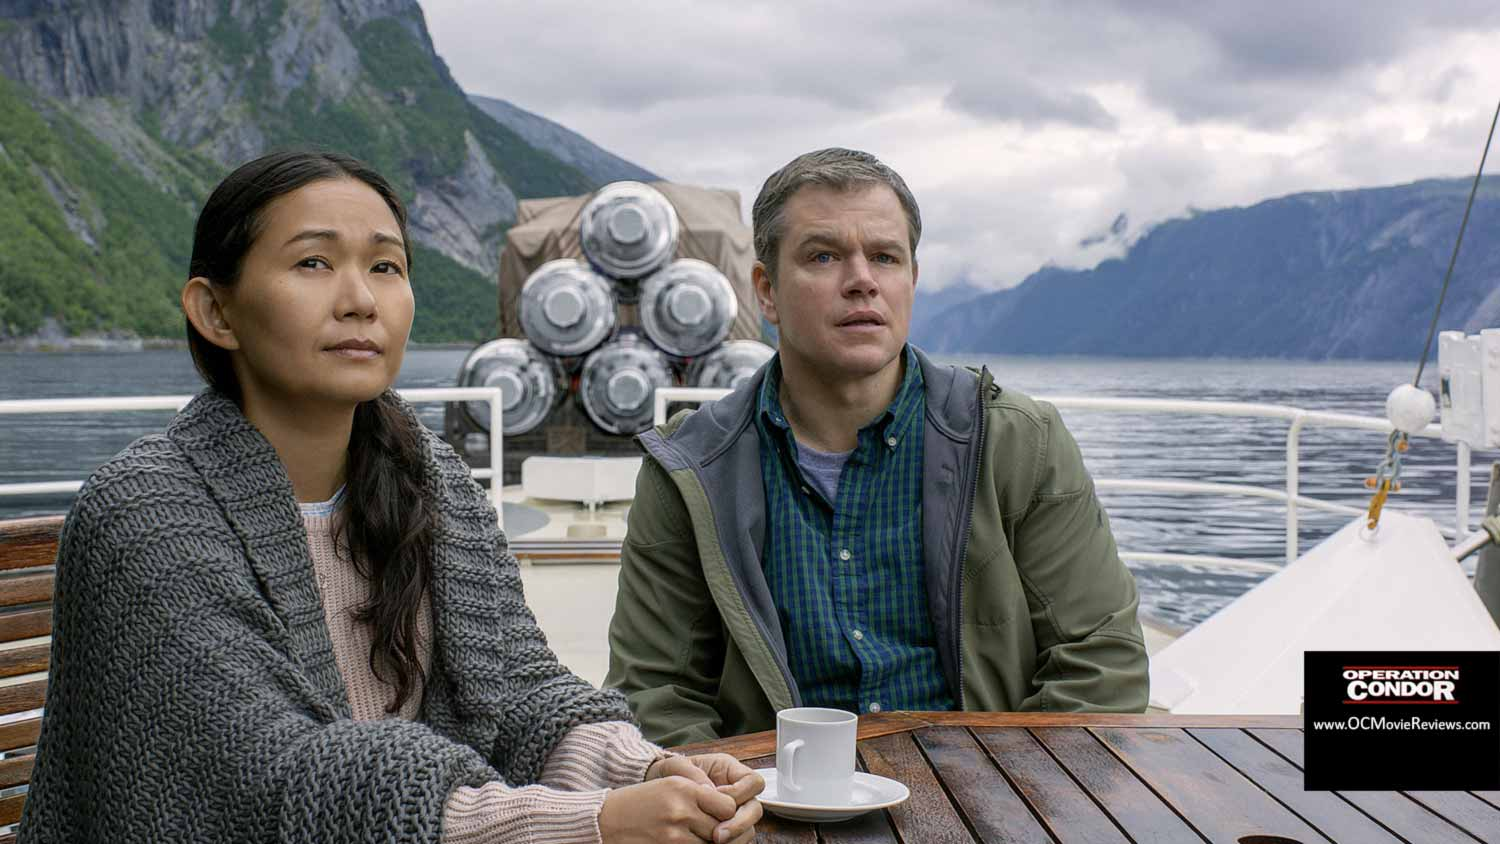 Downsizing Review – A Large Message From Small Stature - OC Movie Reviews - Movie Reviews, Movie News, Documentary Reviews, Short Films, Short Film Reviews, Trailers, Movie Trailers, Interviews, film reviews, film news, hollywood, indie films, documentaries